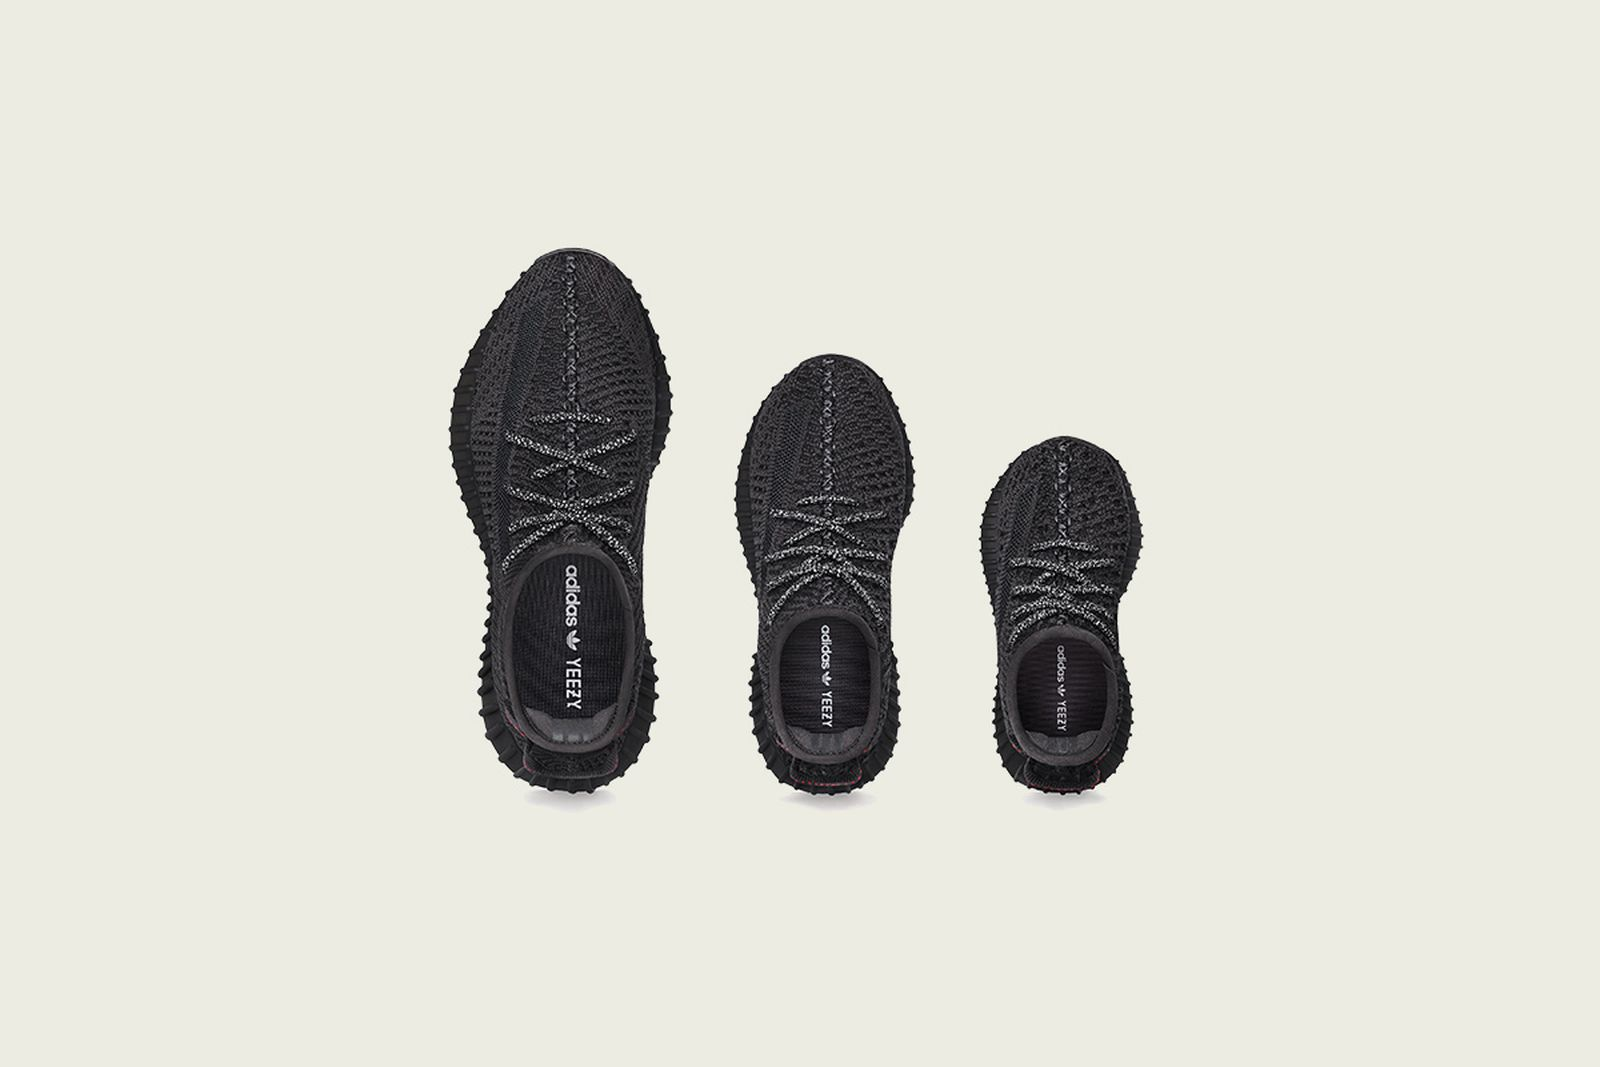 adidas originals yeezy boost 350 v2 black release date price